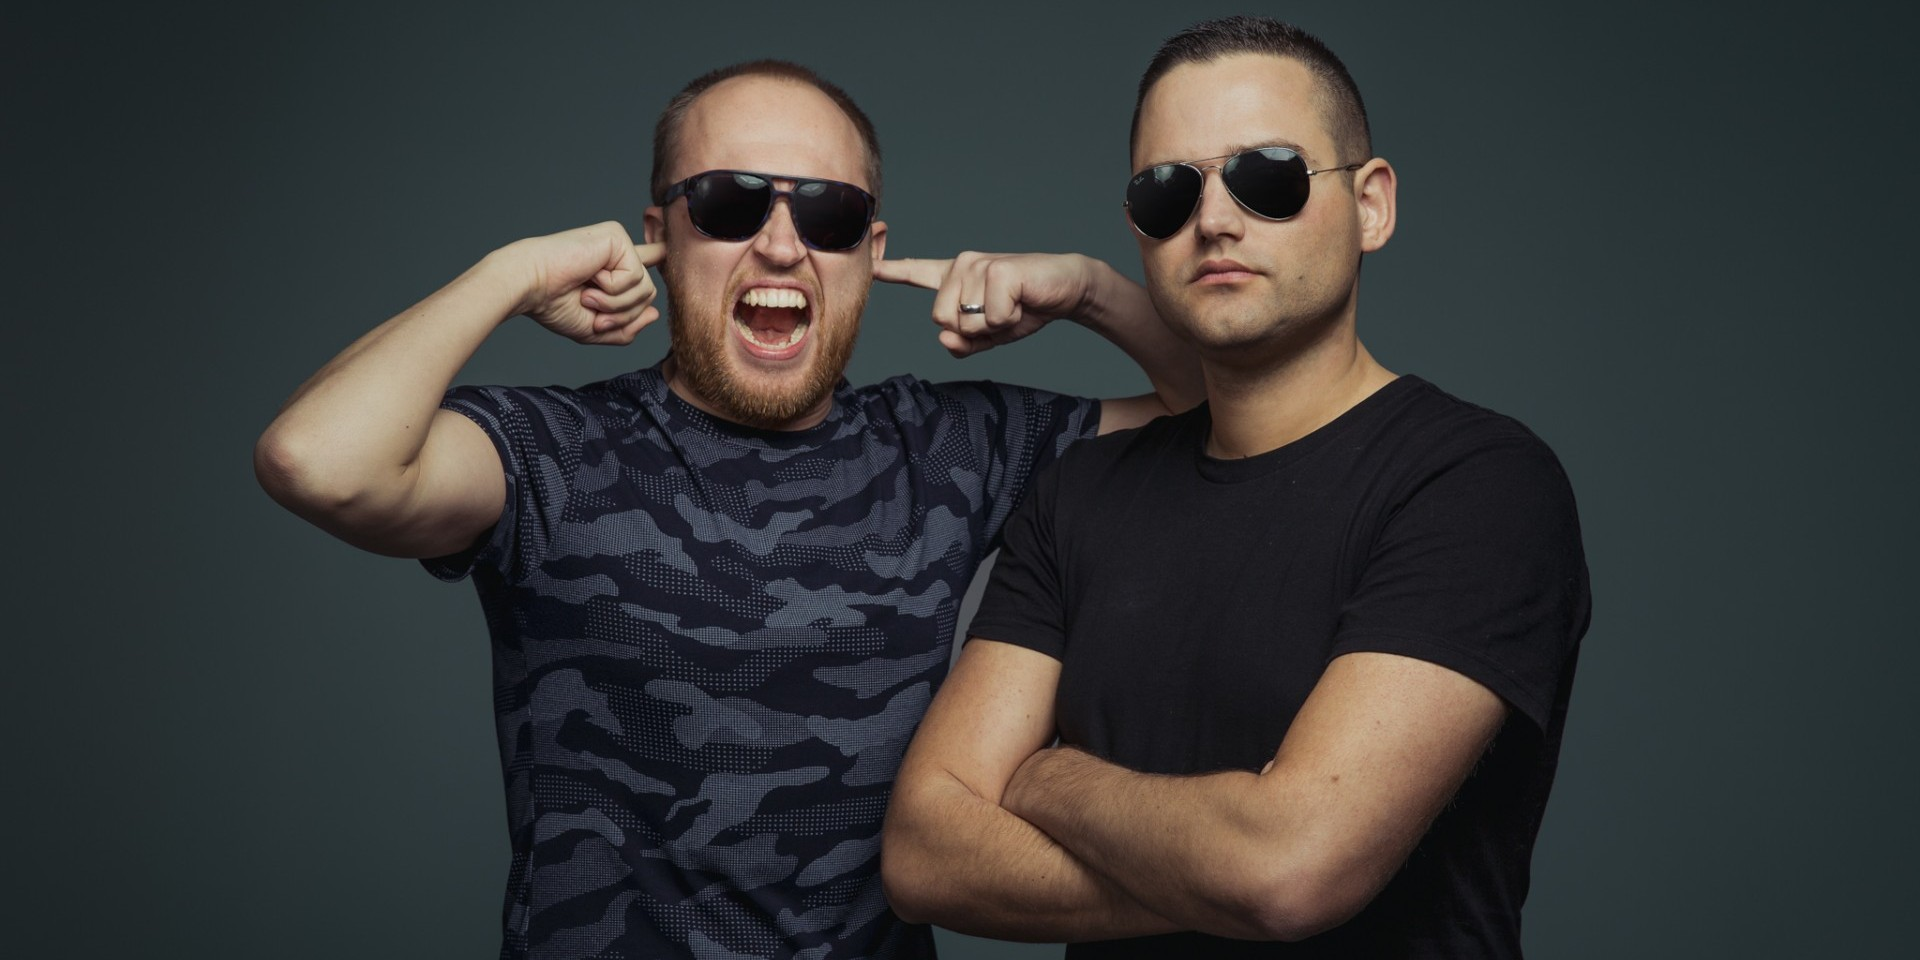 Legacy Festival reveals first act in second wave line-up – Norwegian hardstyle duo Da Tweekaz to perform